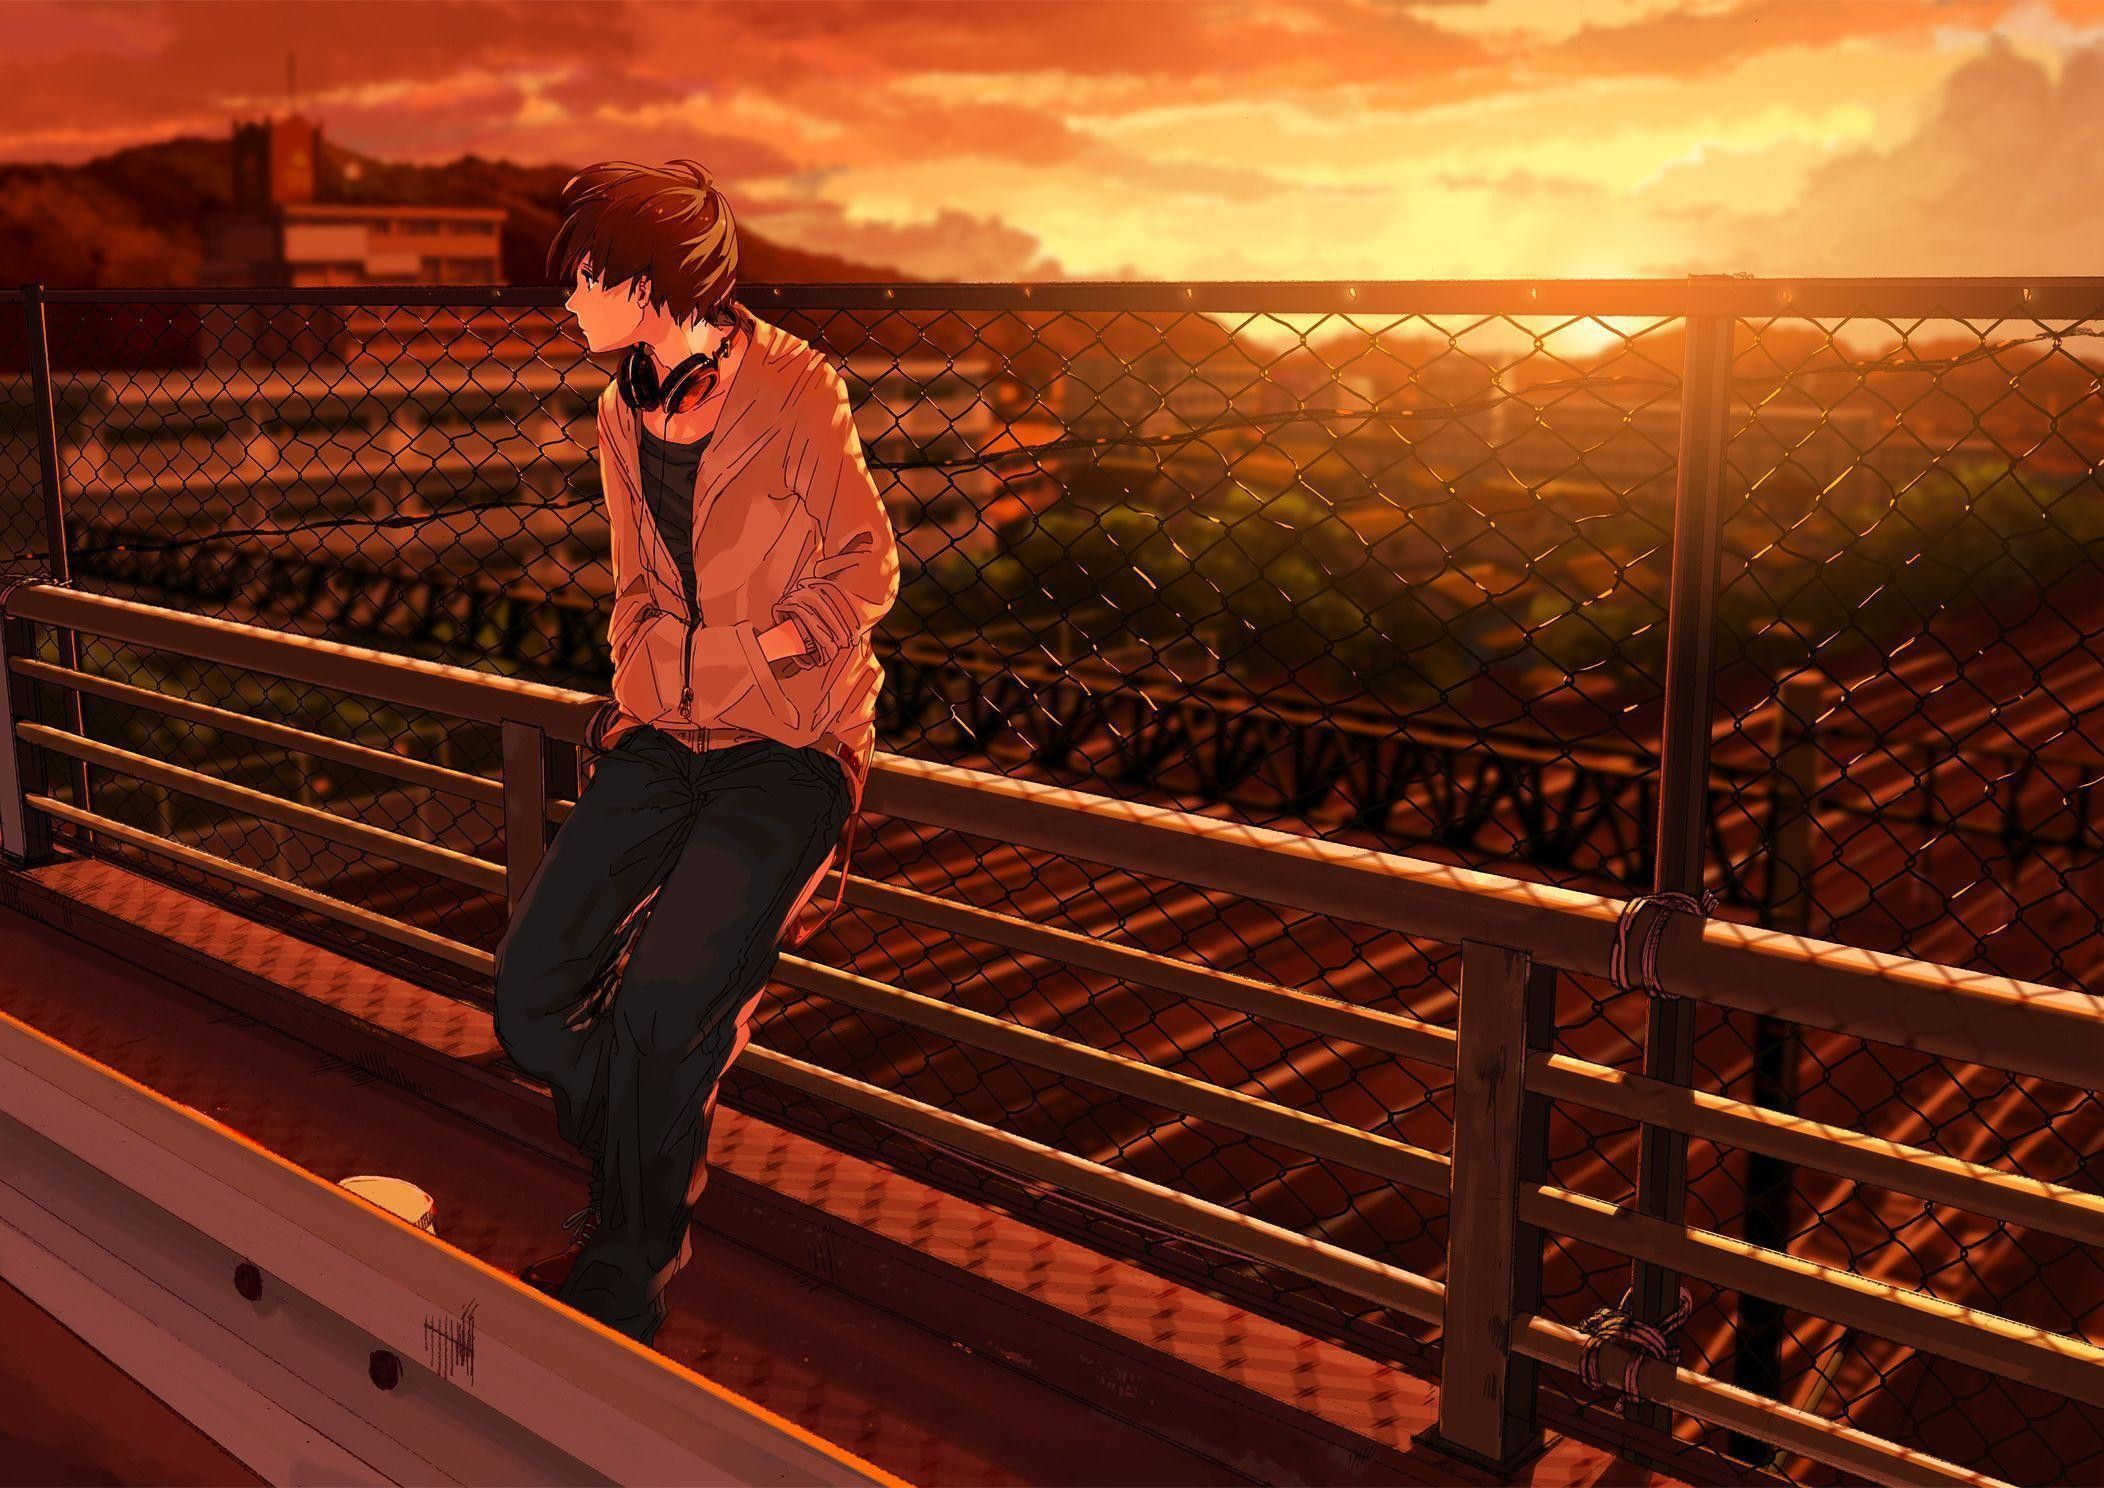 Alone Anime Guy Wallpapers Top Free Alone Anime Guy Backgrounds Wallpaperaccess